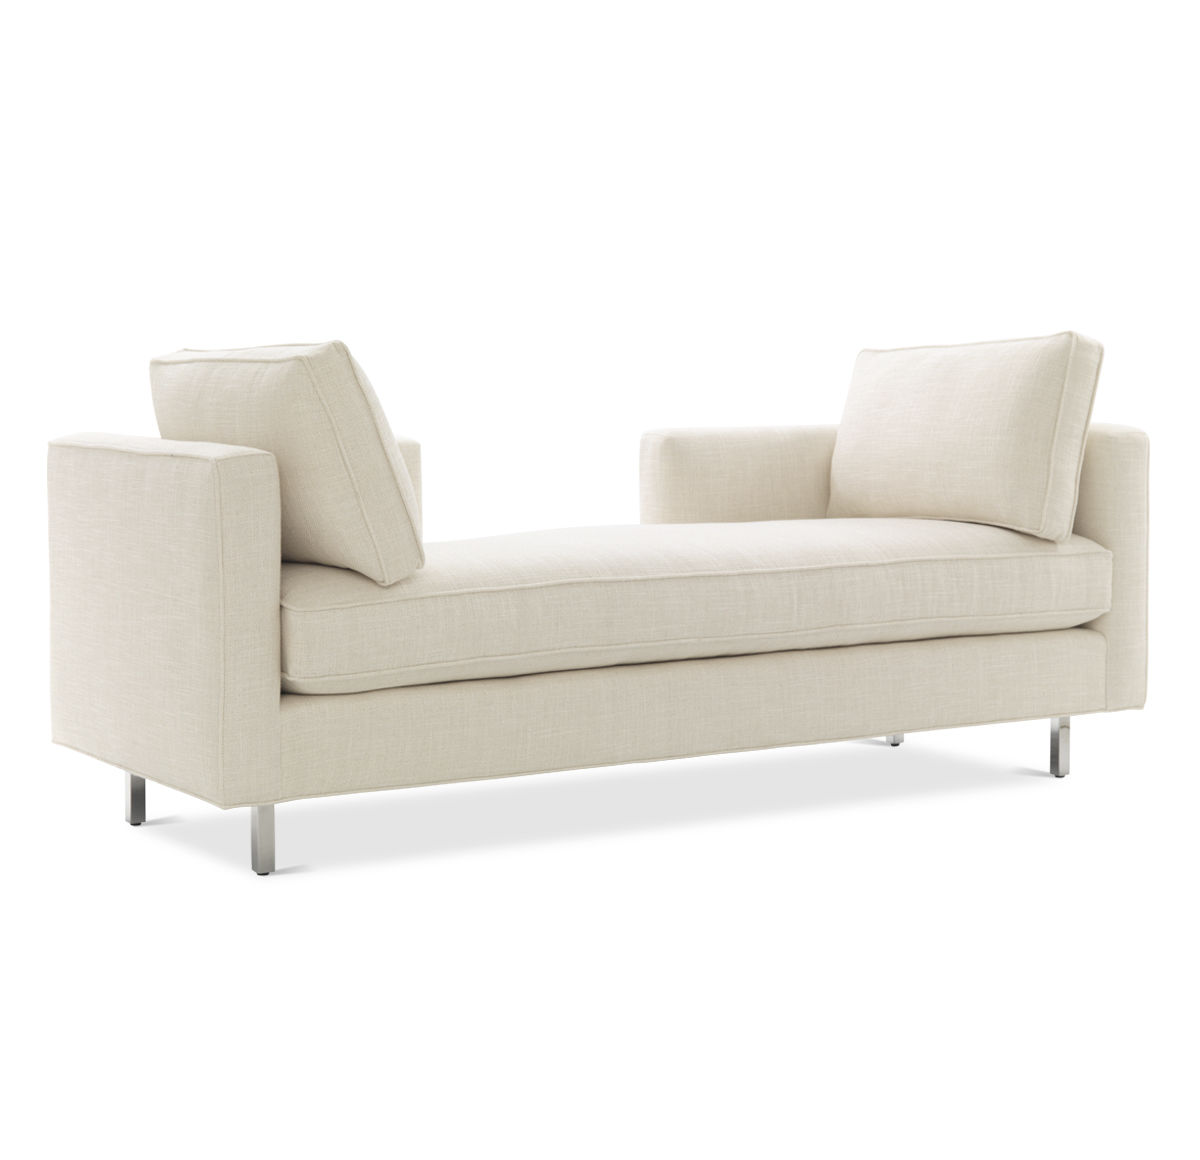 Loveseats and Sofettes